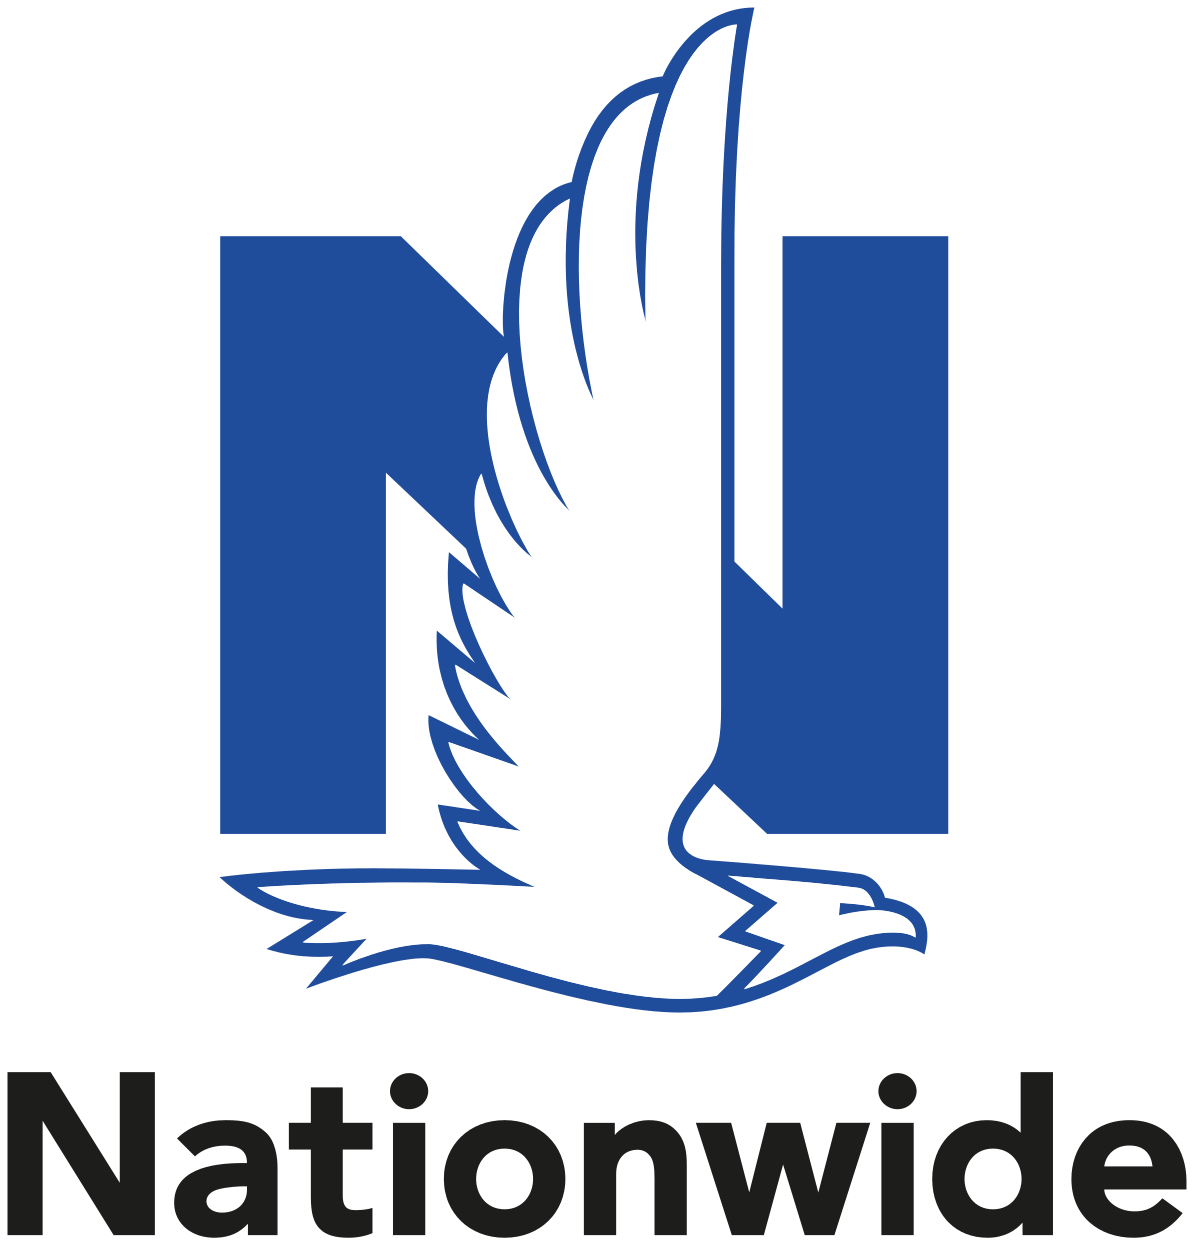 Nationwide - commercial property insurance companies